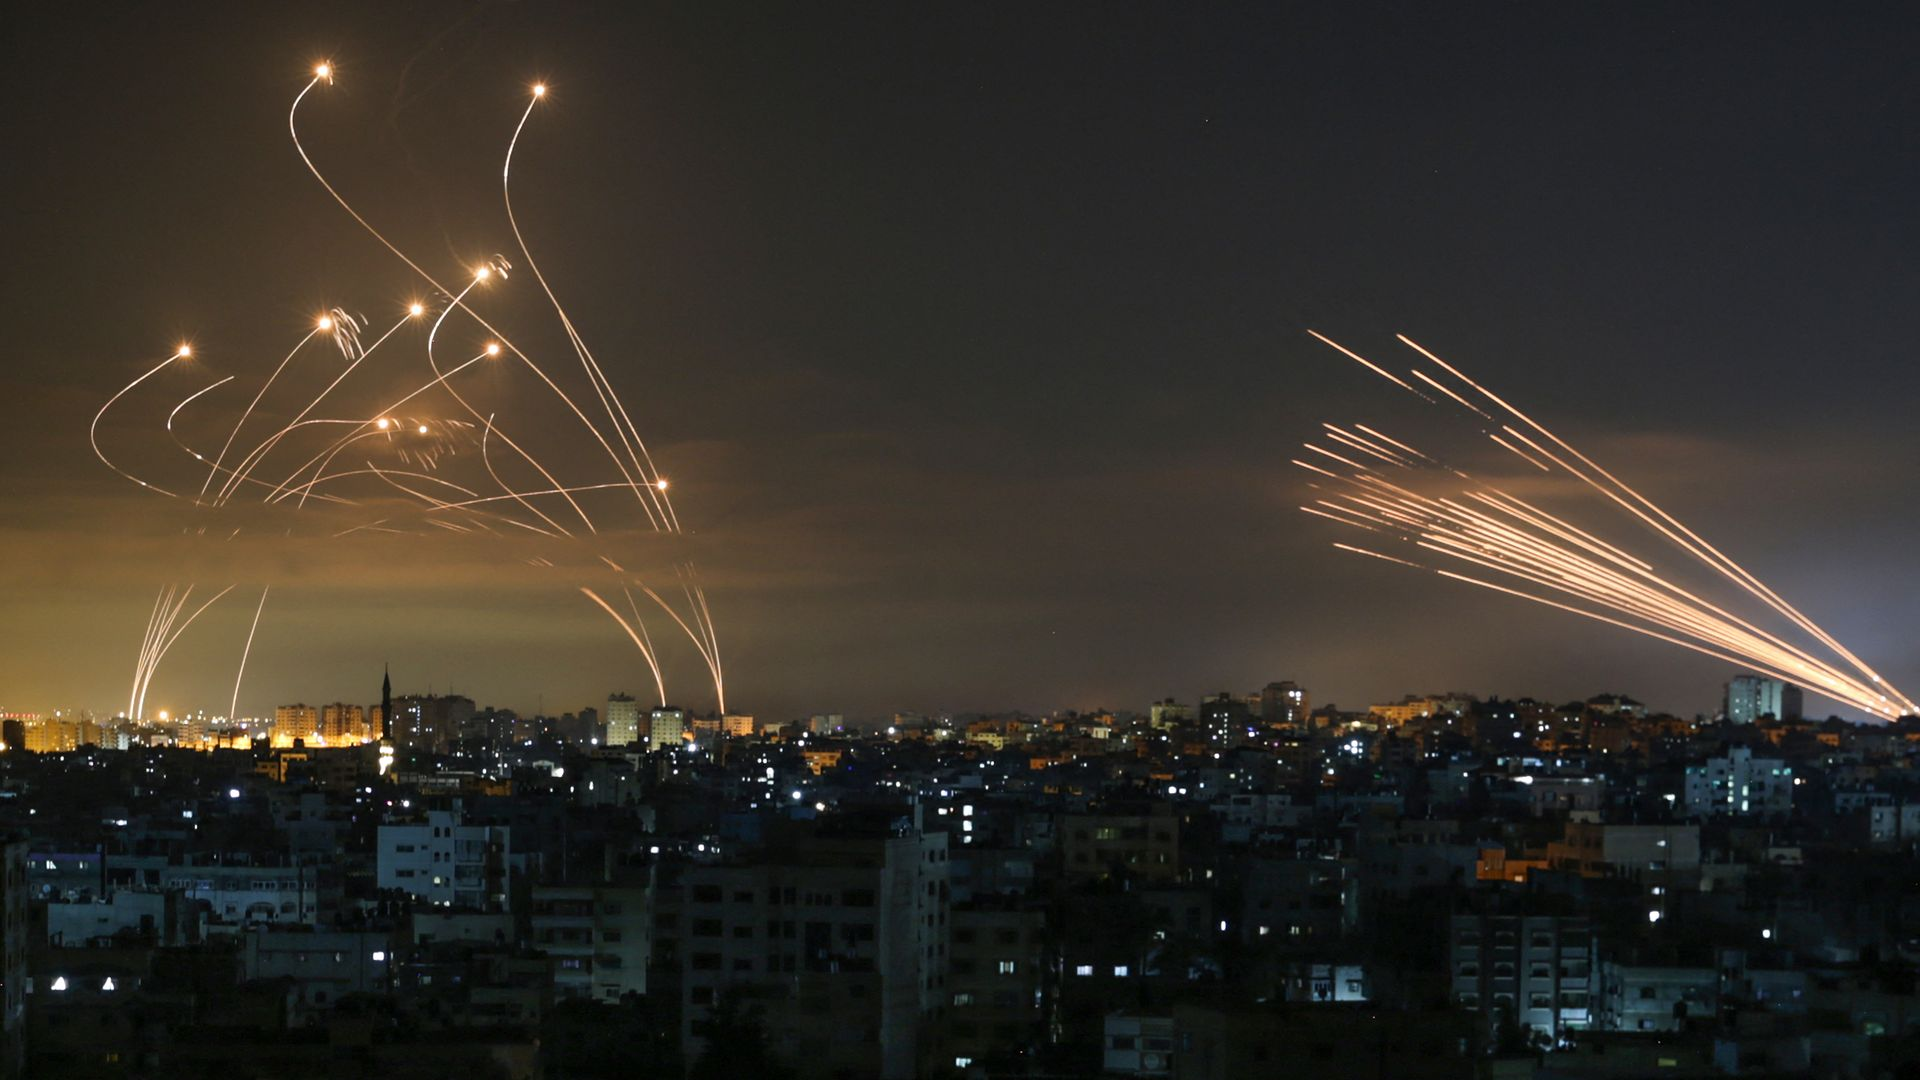 The Israeli Iron Dome missile defence system (left) intercepts rockets (right) fired by Hamas towards southern Israel from Beit Lahia in the northern Gaza Strip - Credit: AFP via Getty Images